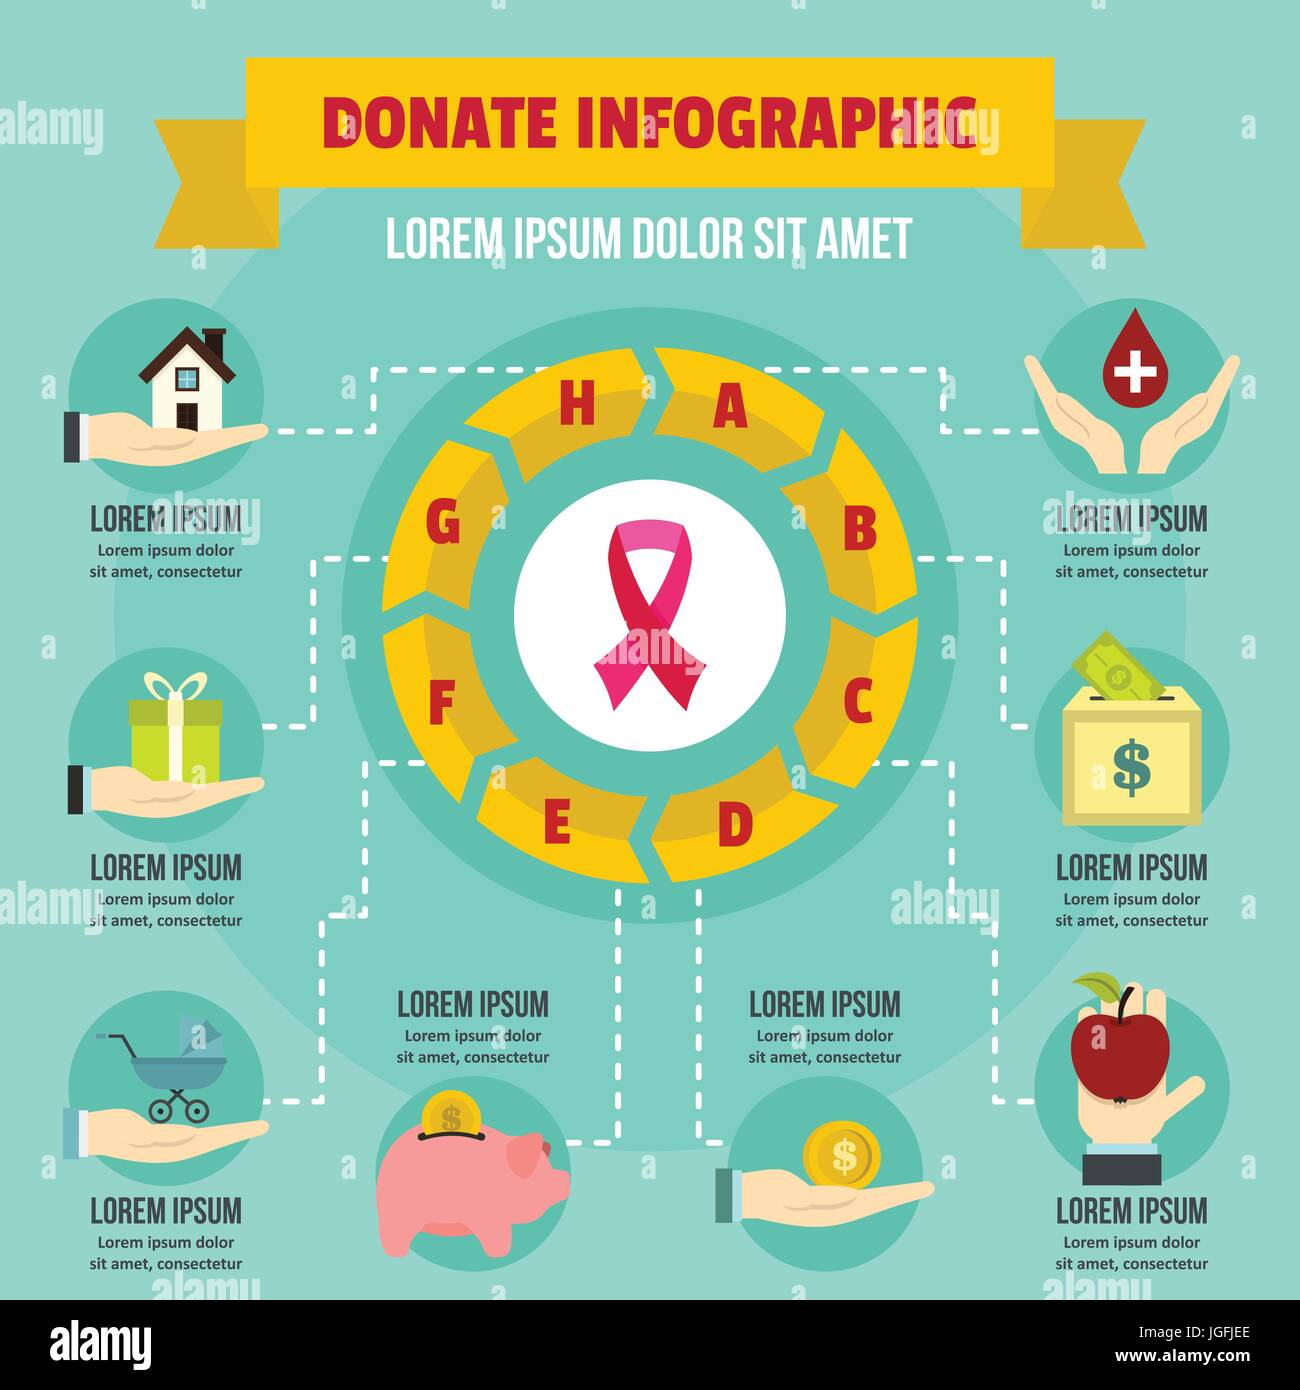 Donate infographic concept, flat style - Stock Image